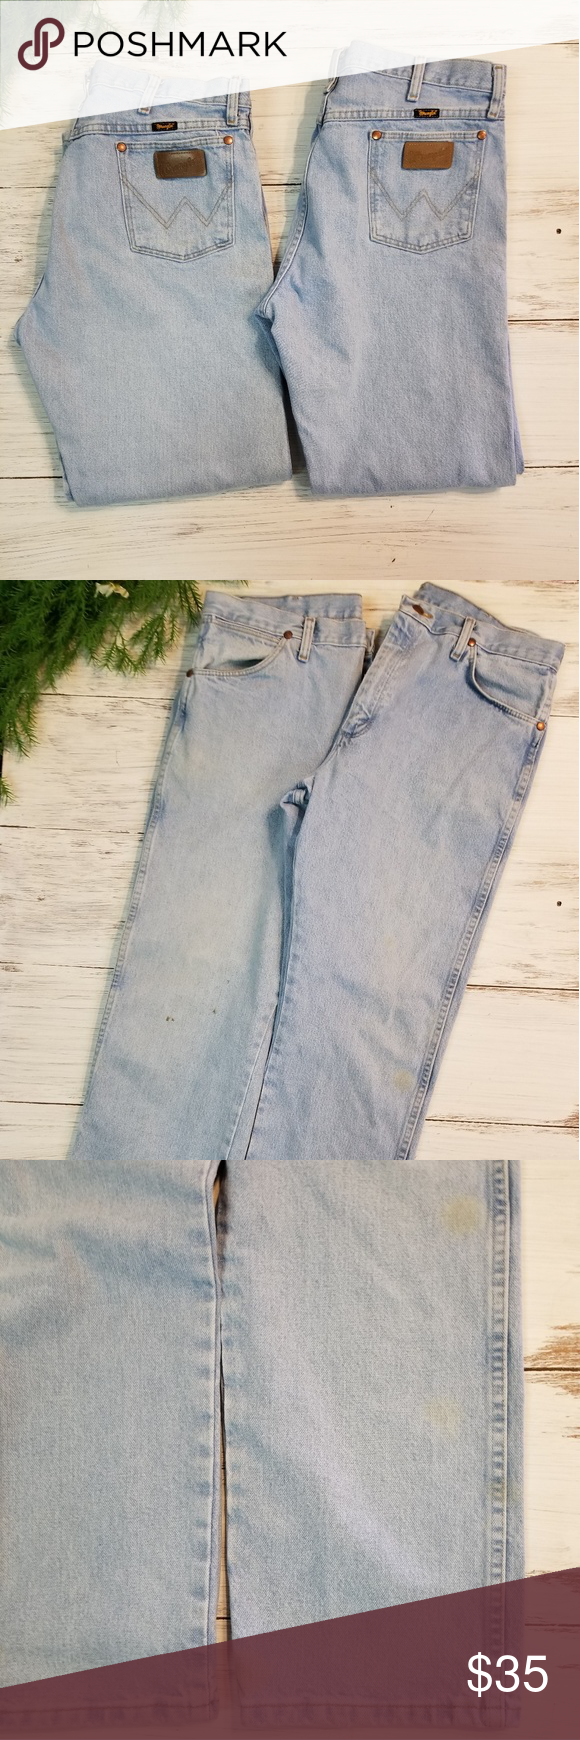 ebcea71c8d7553f1aa809249e200c9b6 - How To Get Dirt Stains Out Of Light Jeans